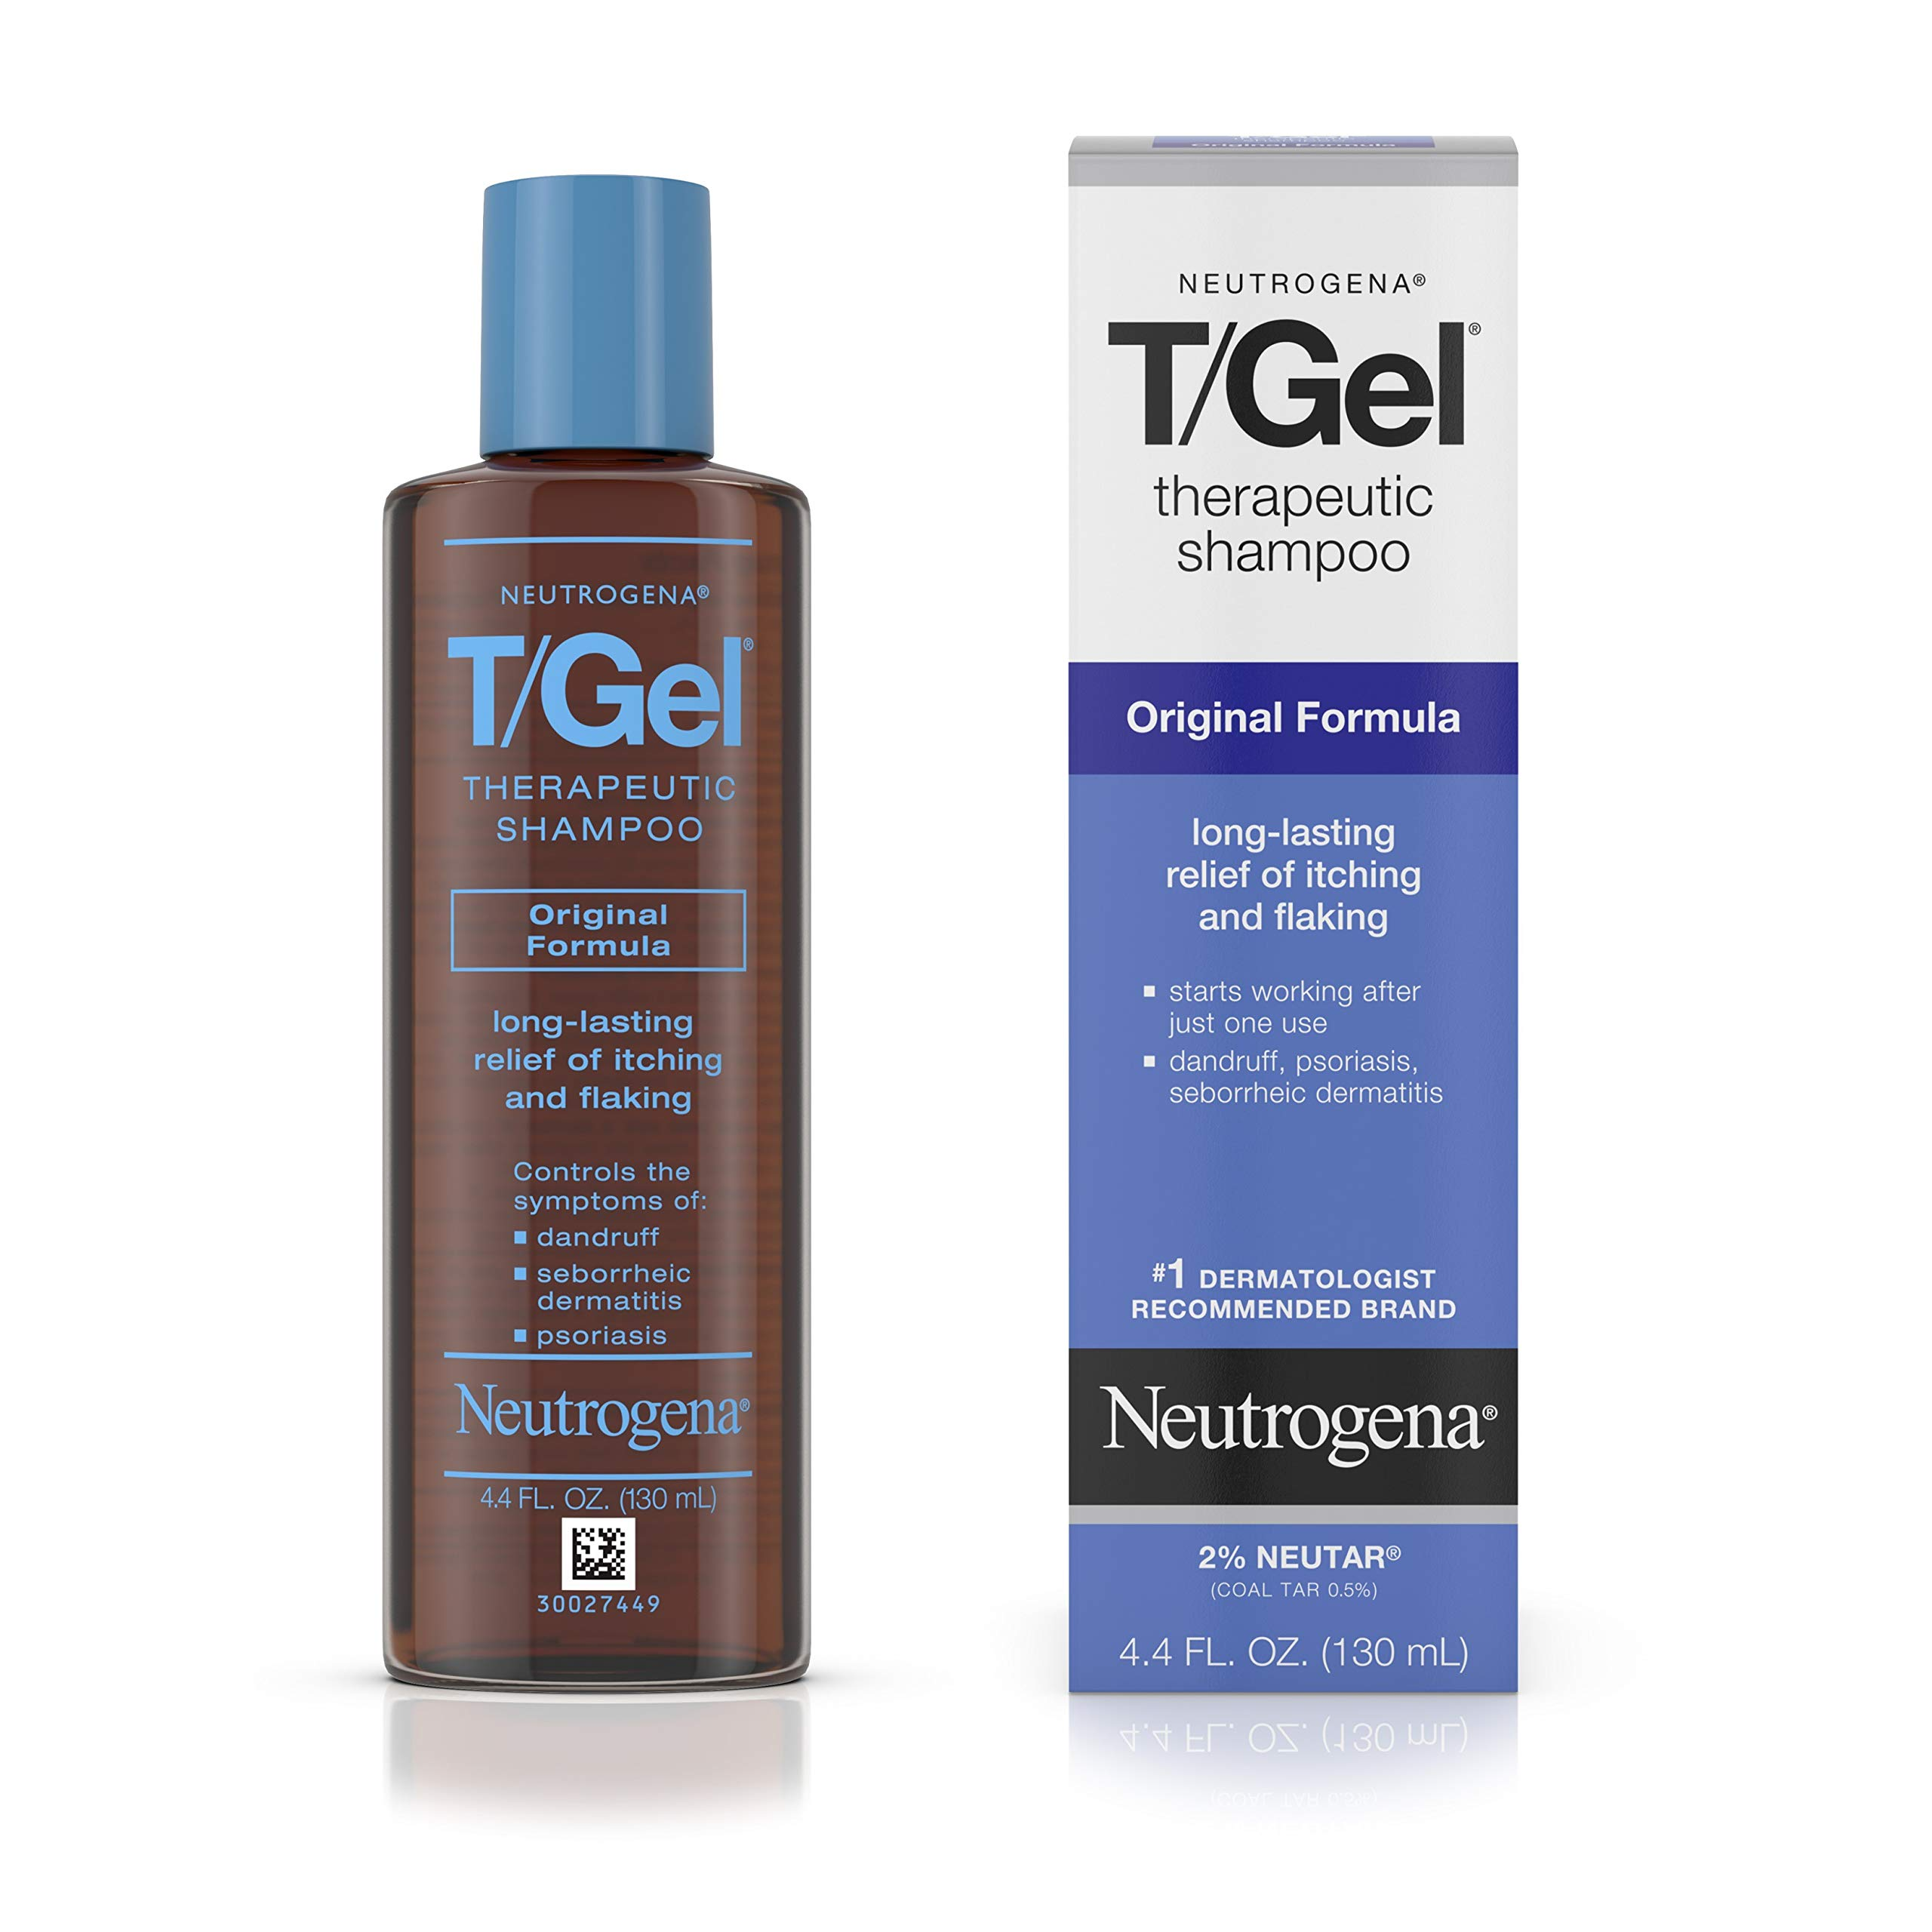 Neutrogena T/Gel Therapeutic Shampoo Original Formula, Anti-Dandruff Treatment for Long-Lasting Relief of Itching and Flaking Scalp as a Result of Psoriasis and Seborrheic Dermatitis, 4.4 fl. oz